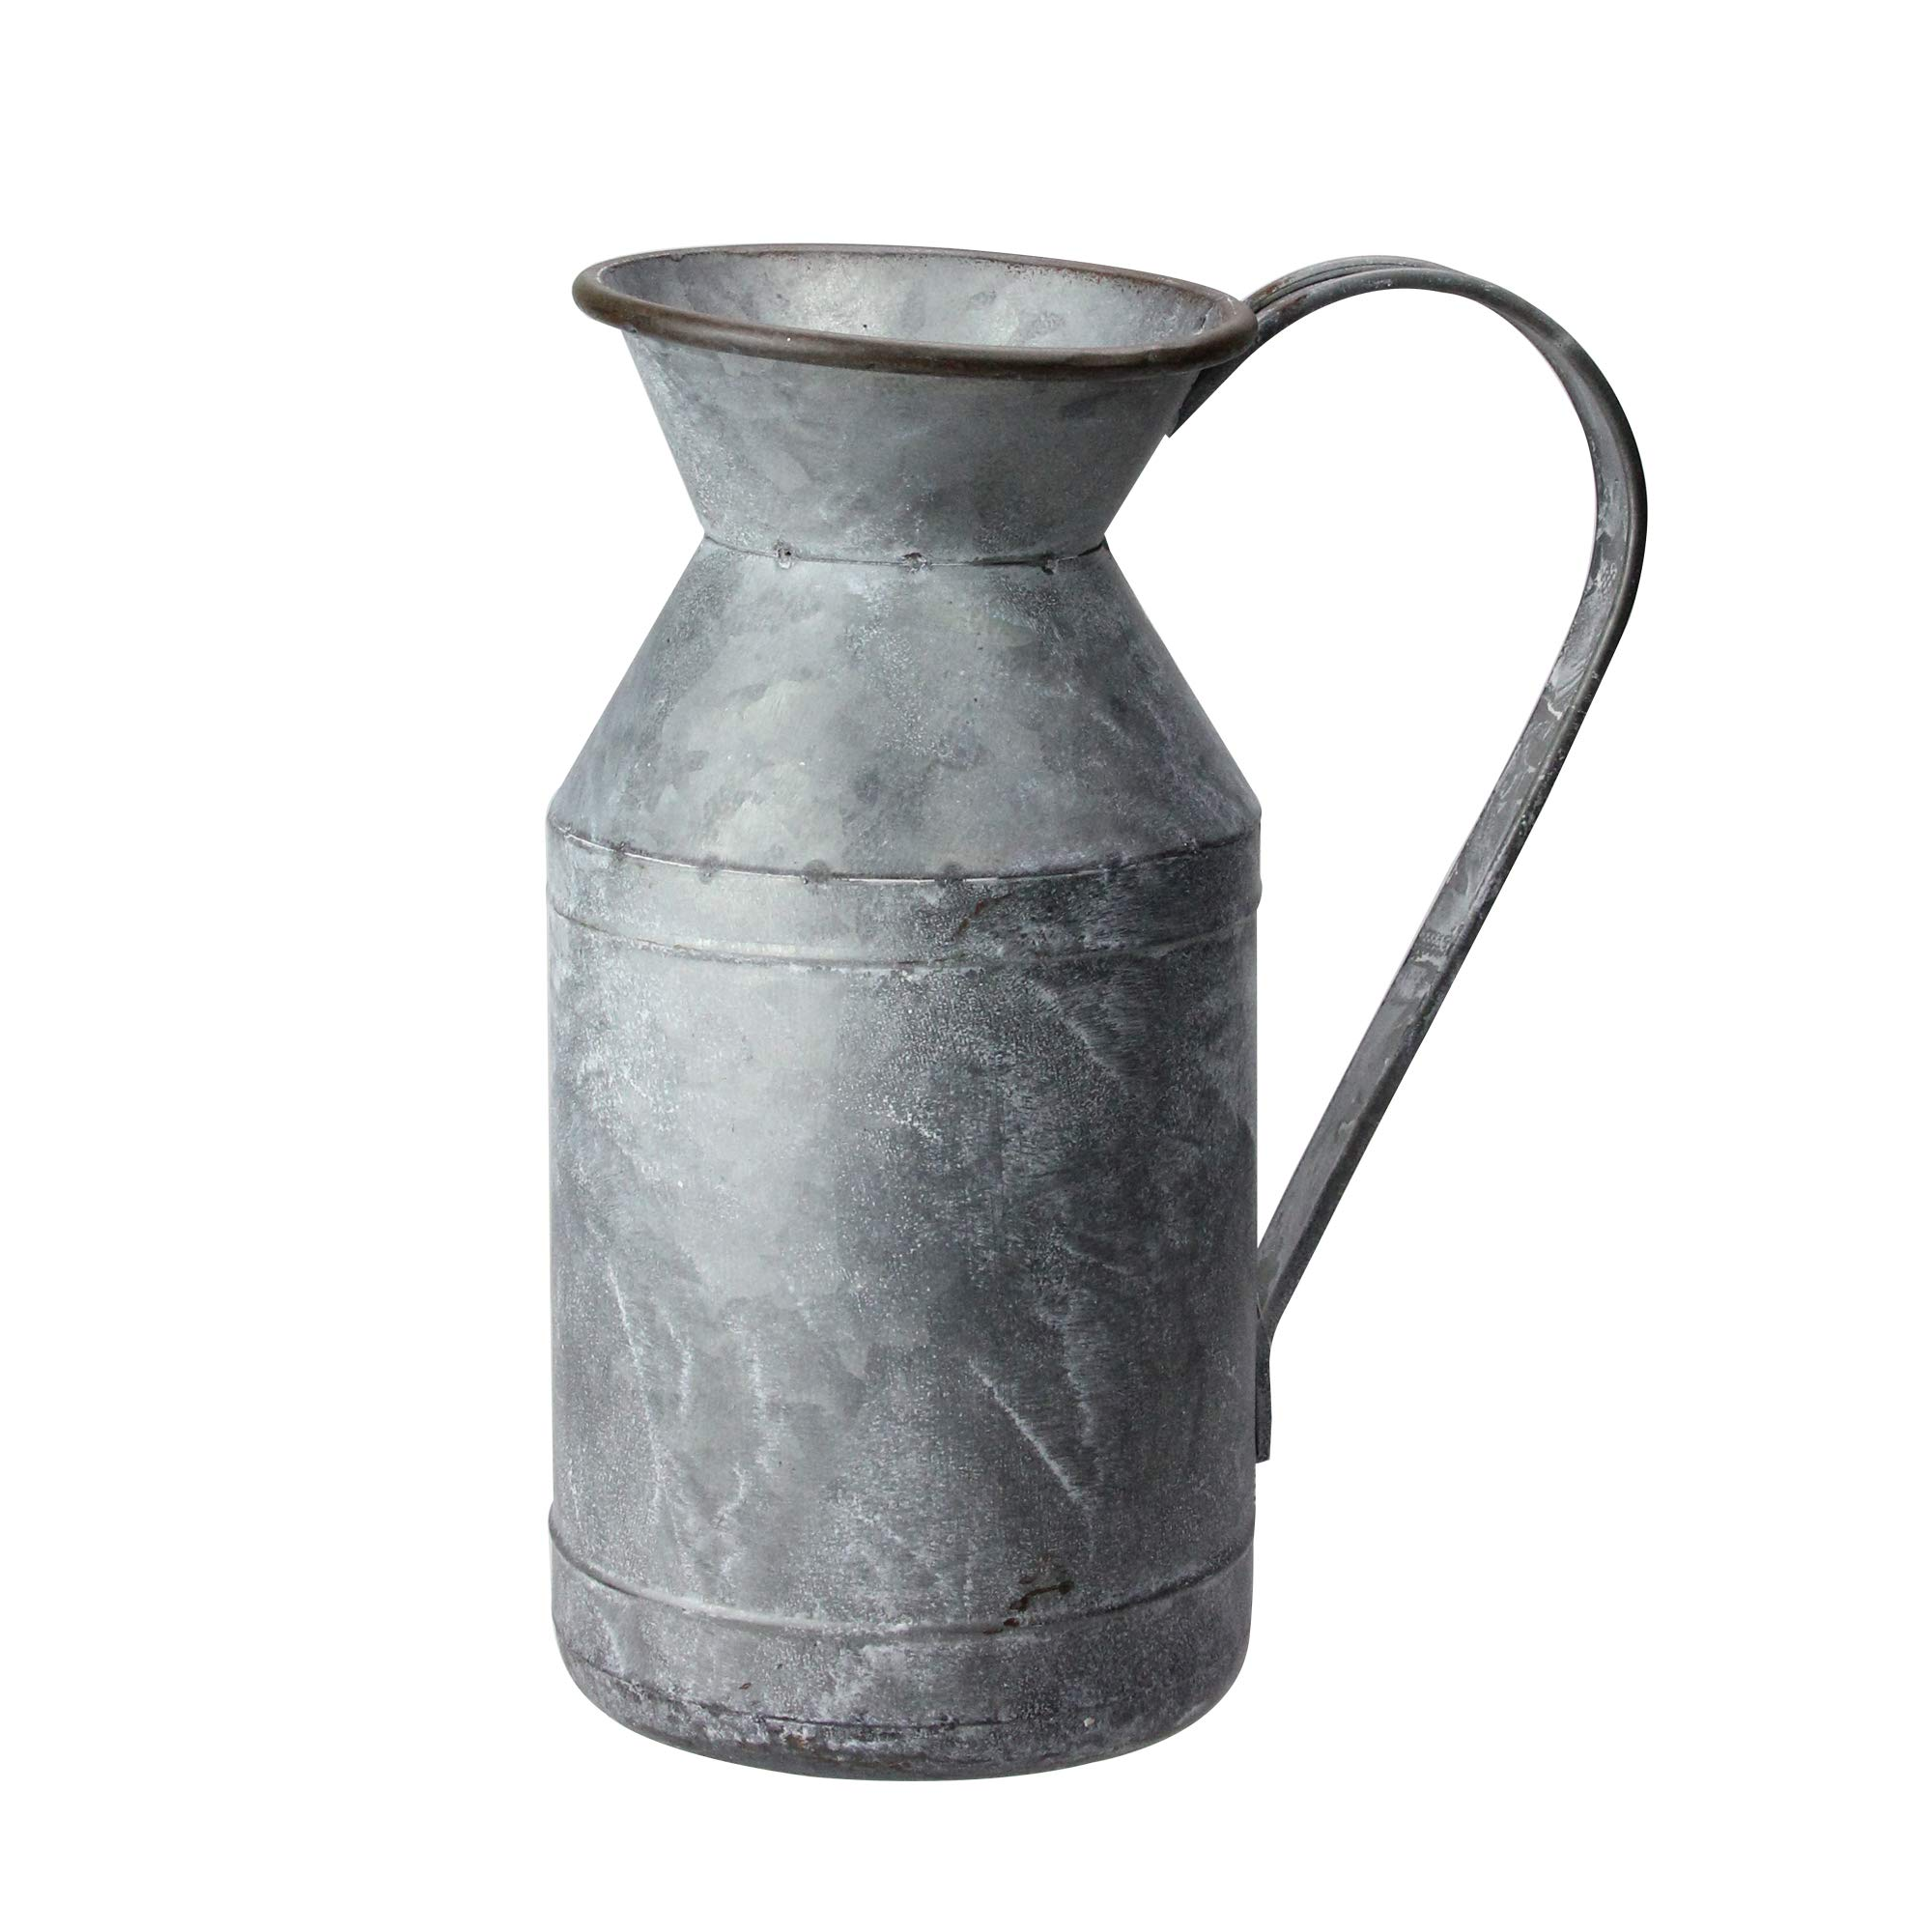 RAZ Imports Rustic Galvanized 11 inch Iron Metal Decorative Farmhouse Pitcher by RAZ Imports